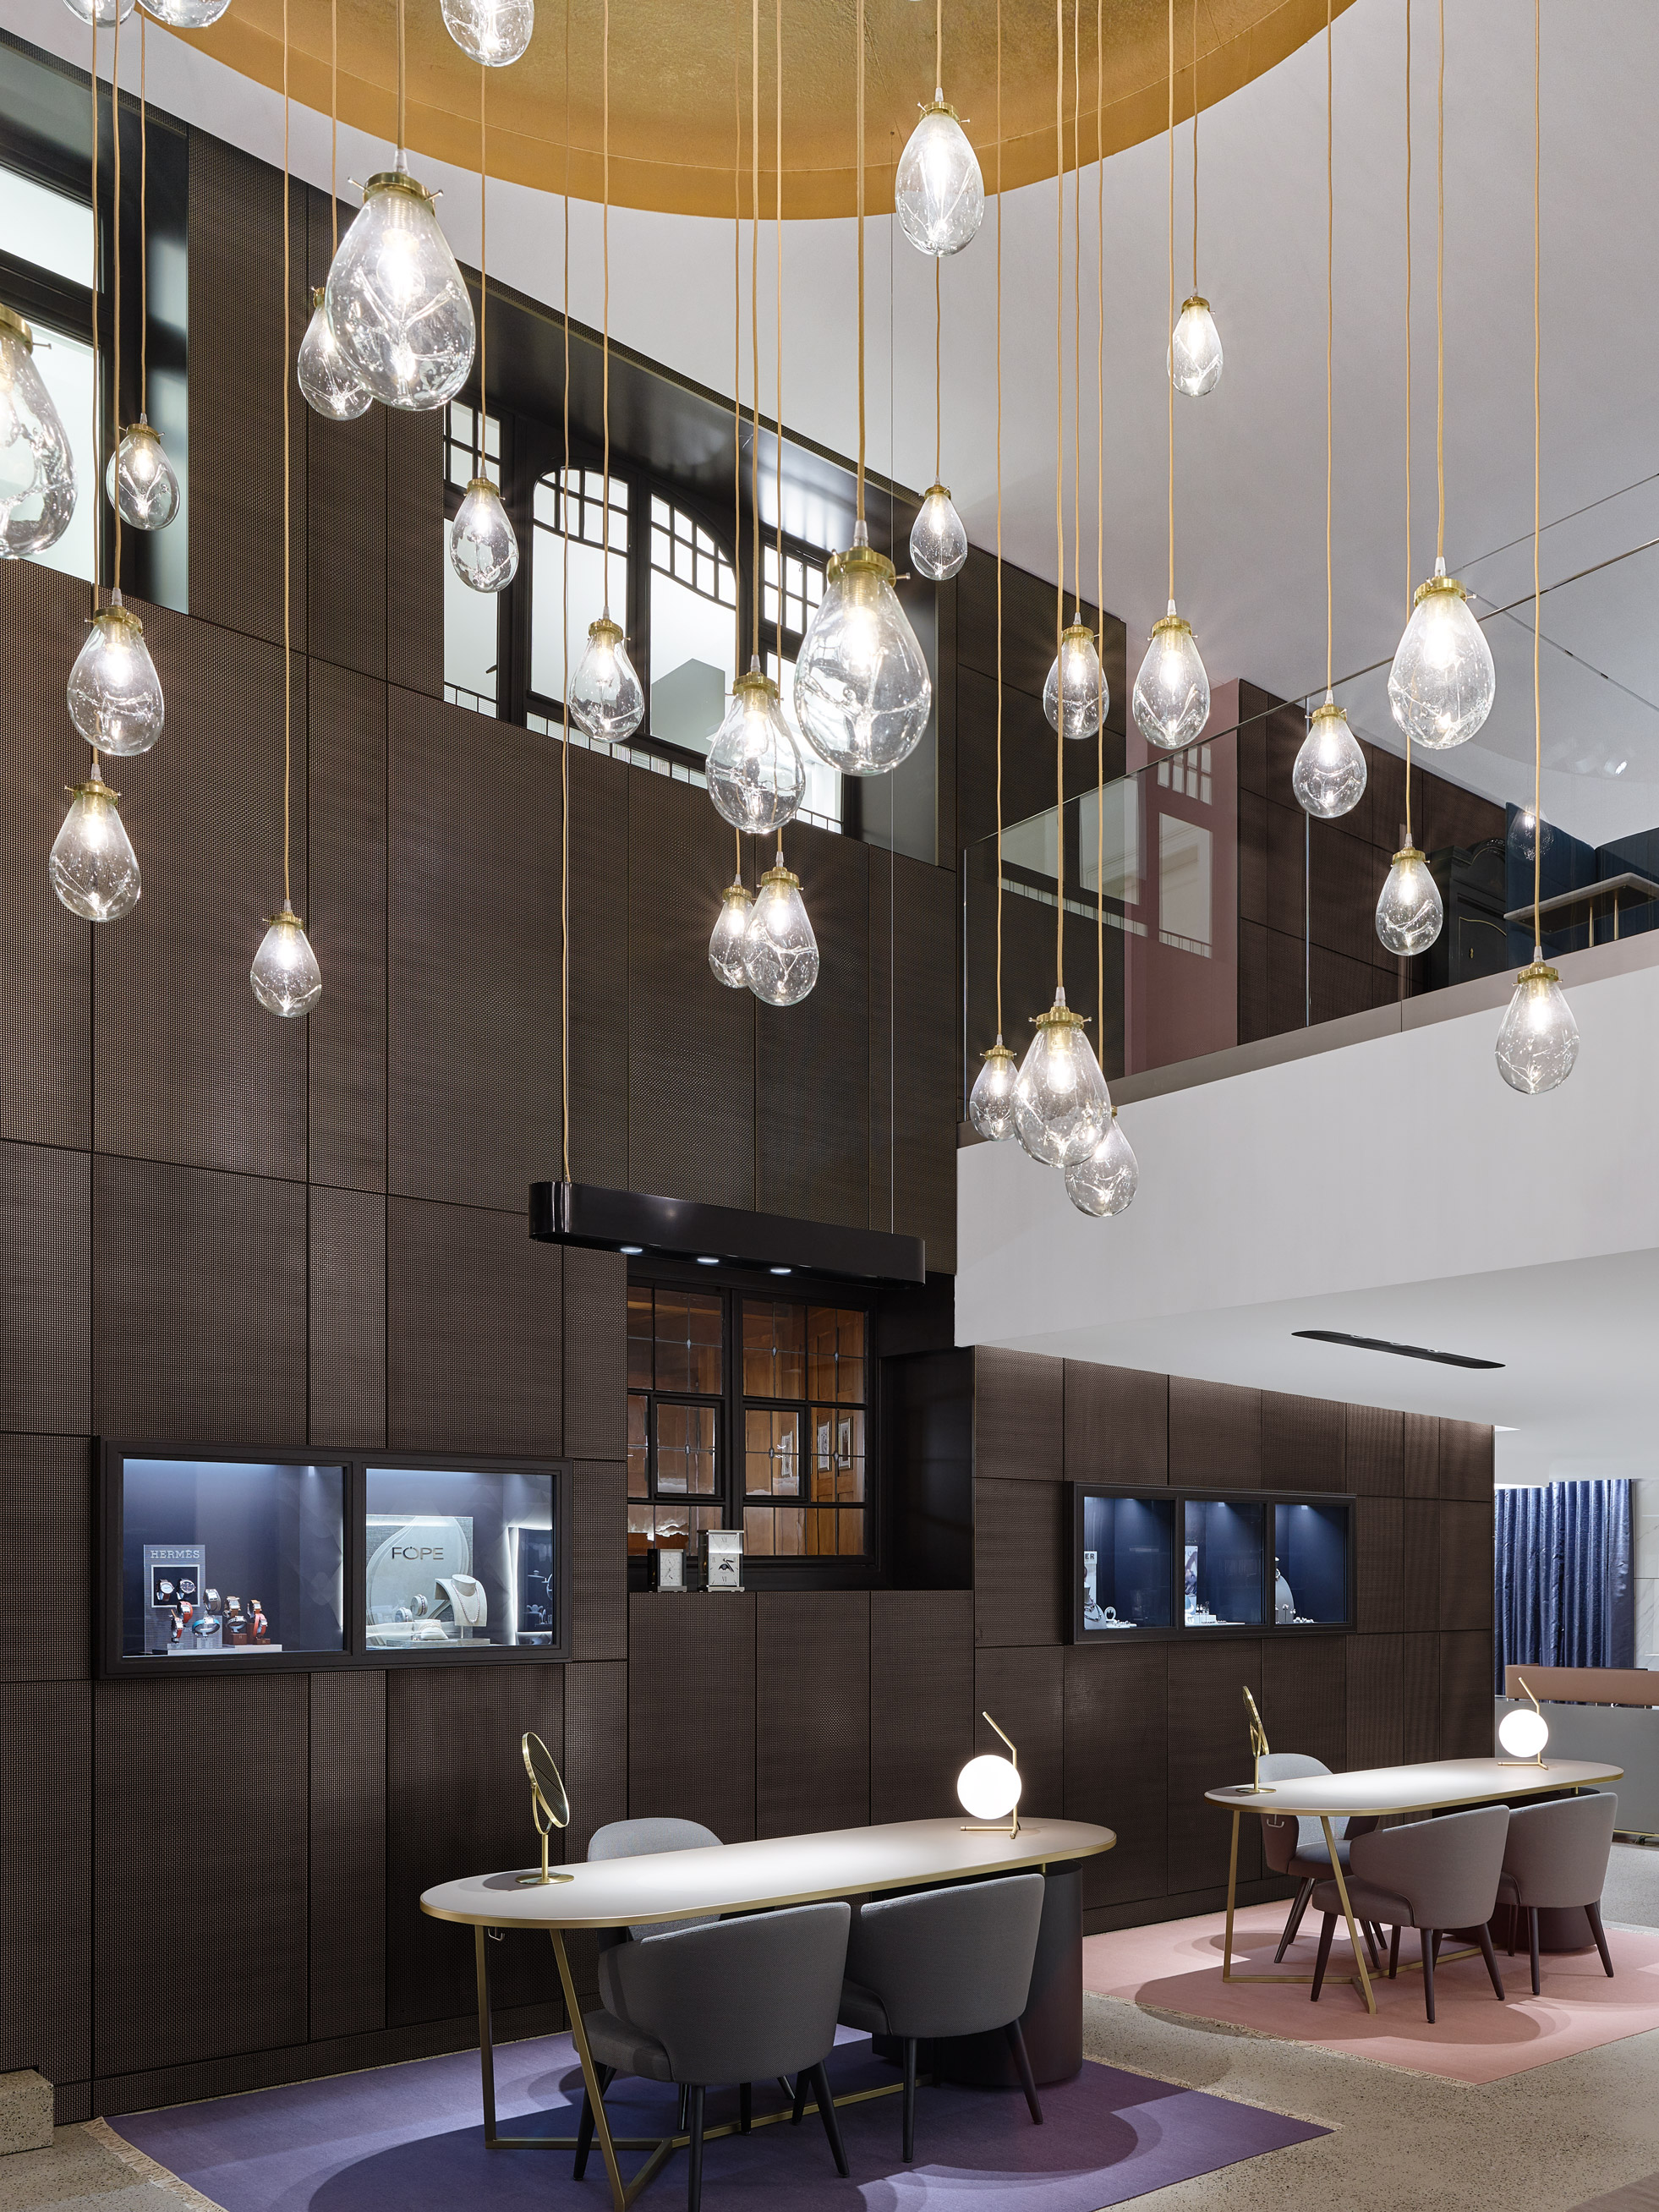 The beautiful custom lighting in the updated Hunke Jewelry store allows light to sparkle off the S-12 decorative mesh.